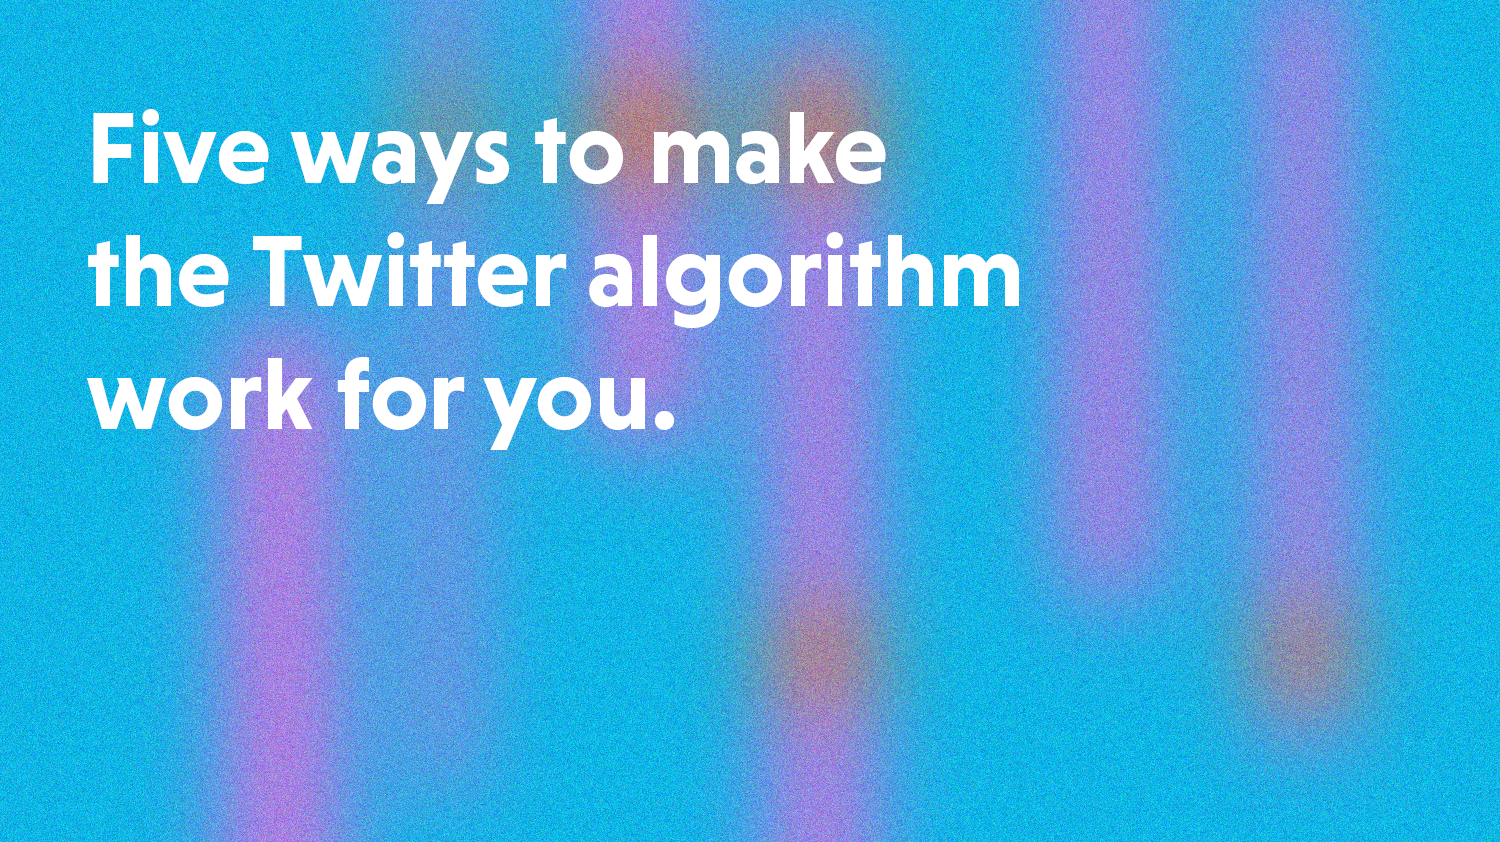 Five ways to make the 2020 Twitter algorithm work for you